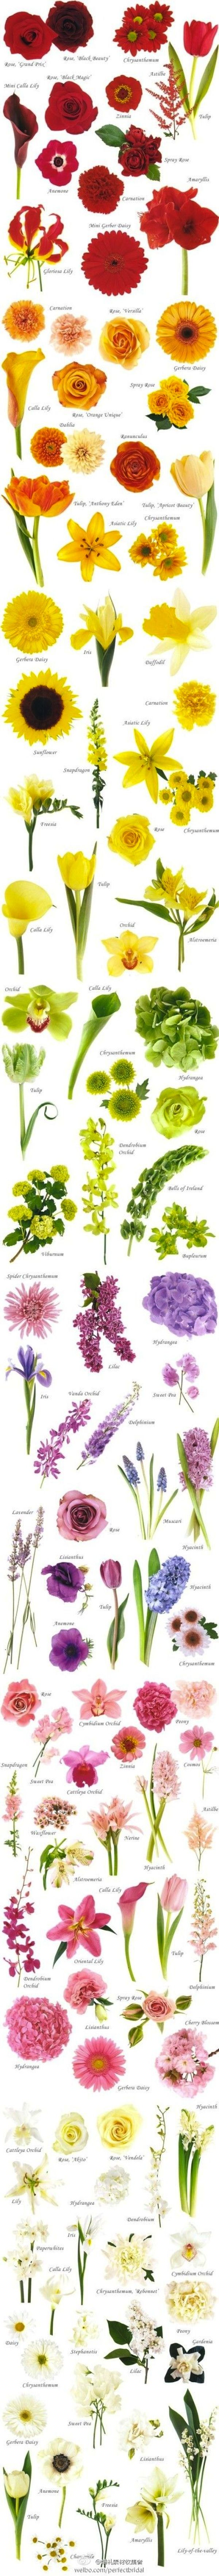 Don't know your carnations from your chrysanthemums? Let this fabulous guide help you to identify your favourite flowers, introduce you to new ones and inspire you to put together your dream bouquet and wedding flower arrangements. If you're feeli